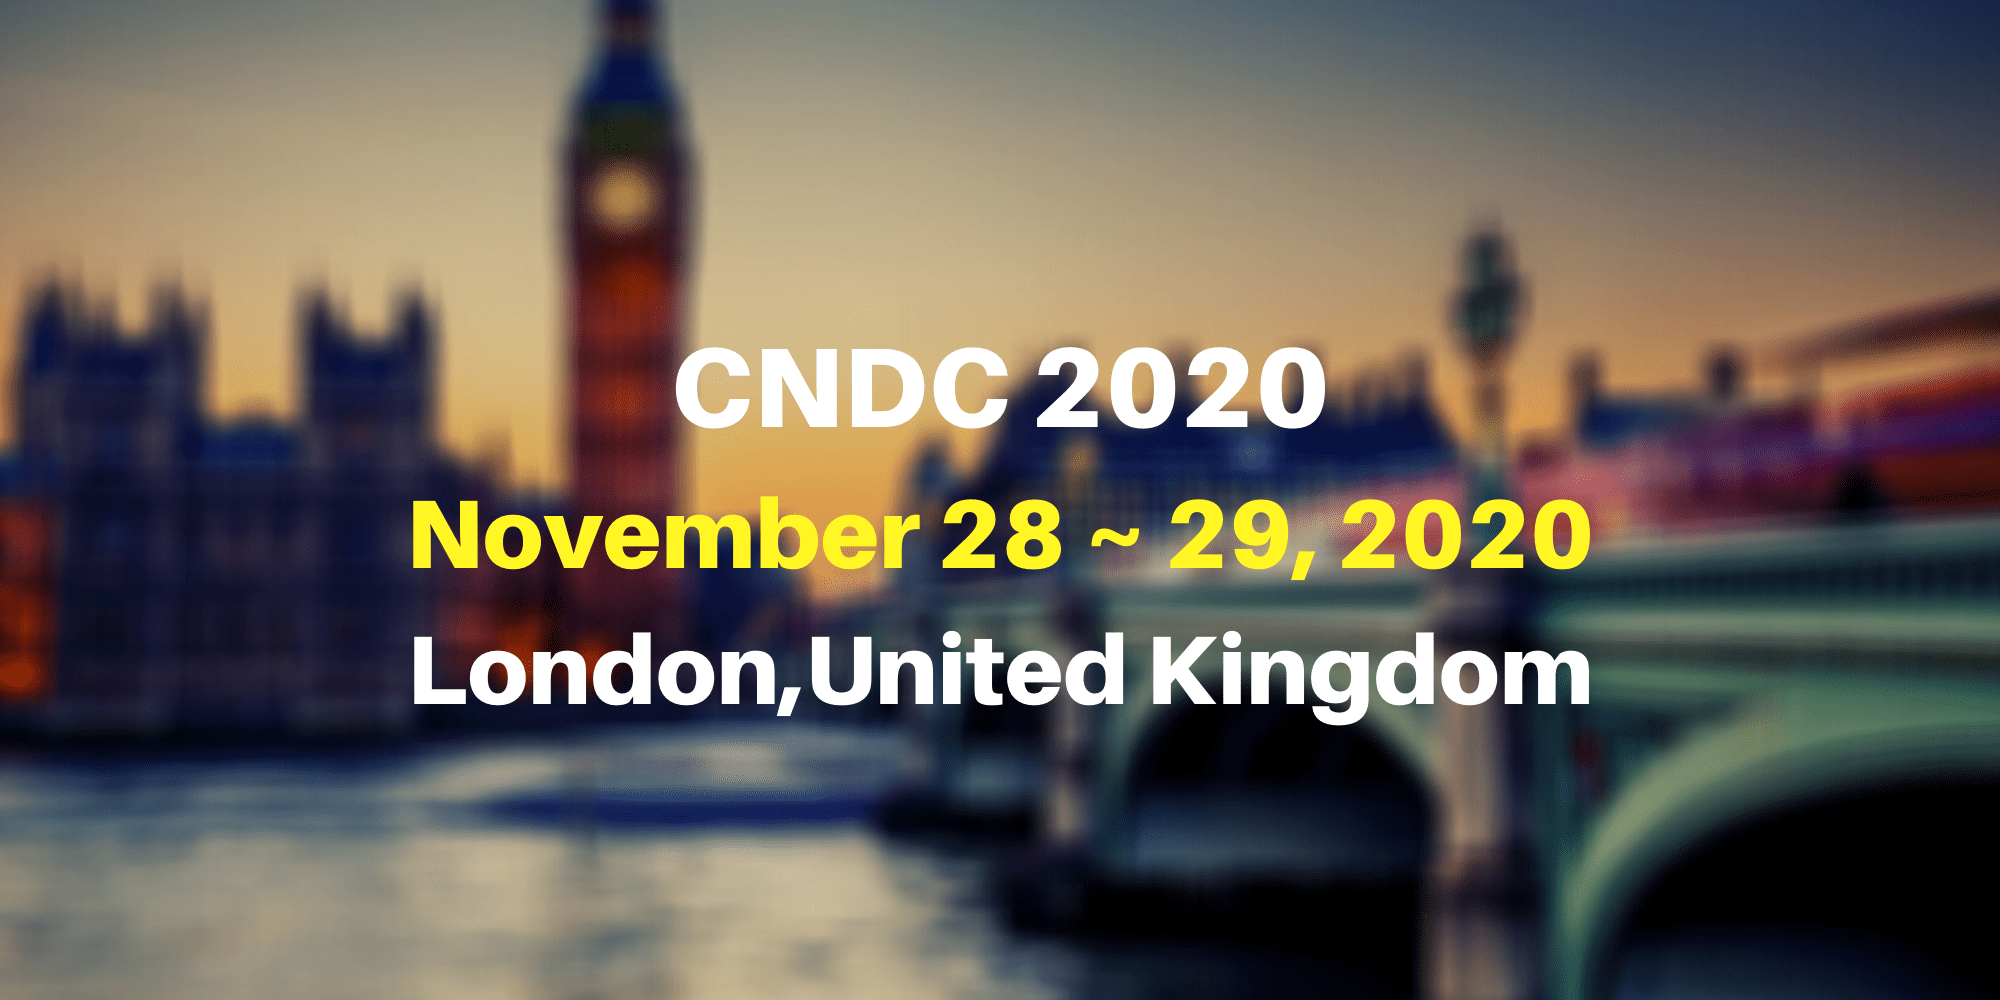 7th International Conference on Computer Networks & Data Communications (CNDC 2020)